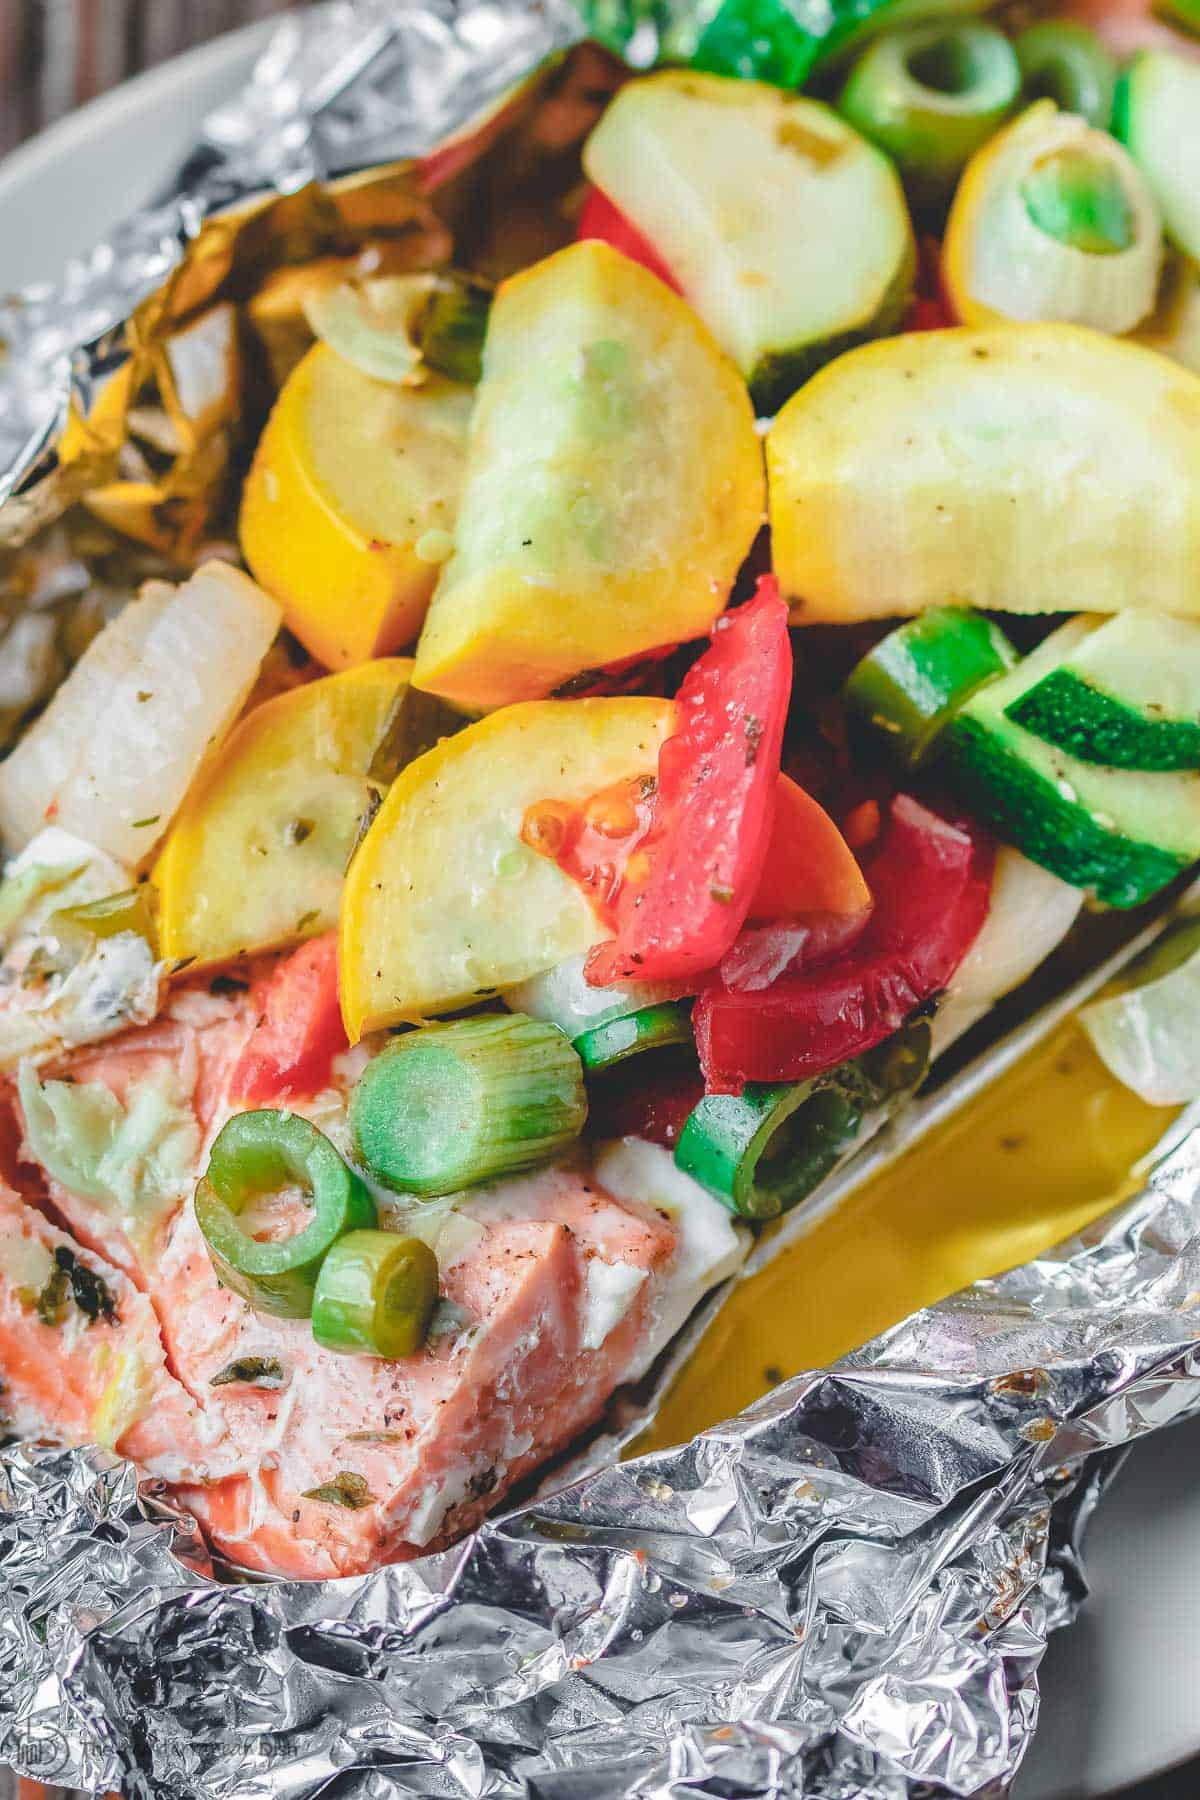 Mediterranean-style baked salmon in foil